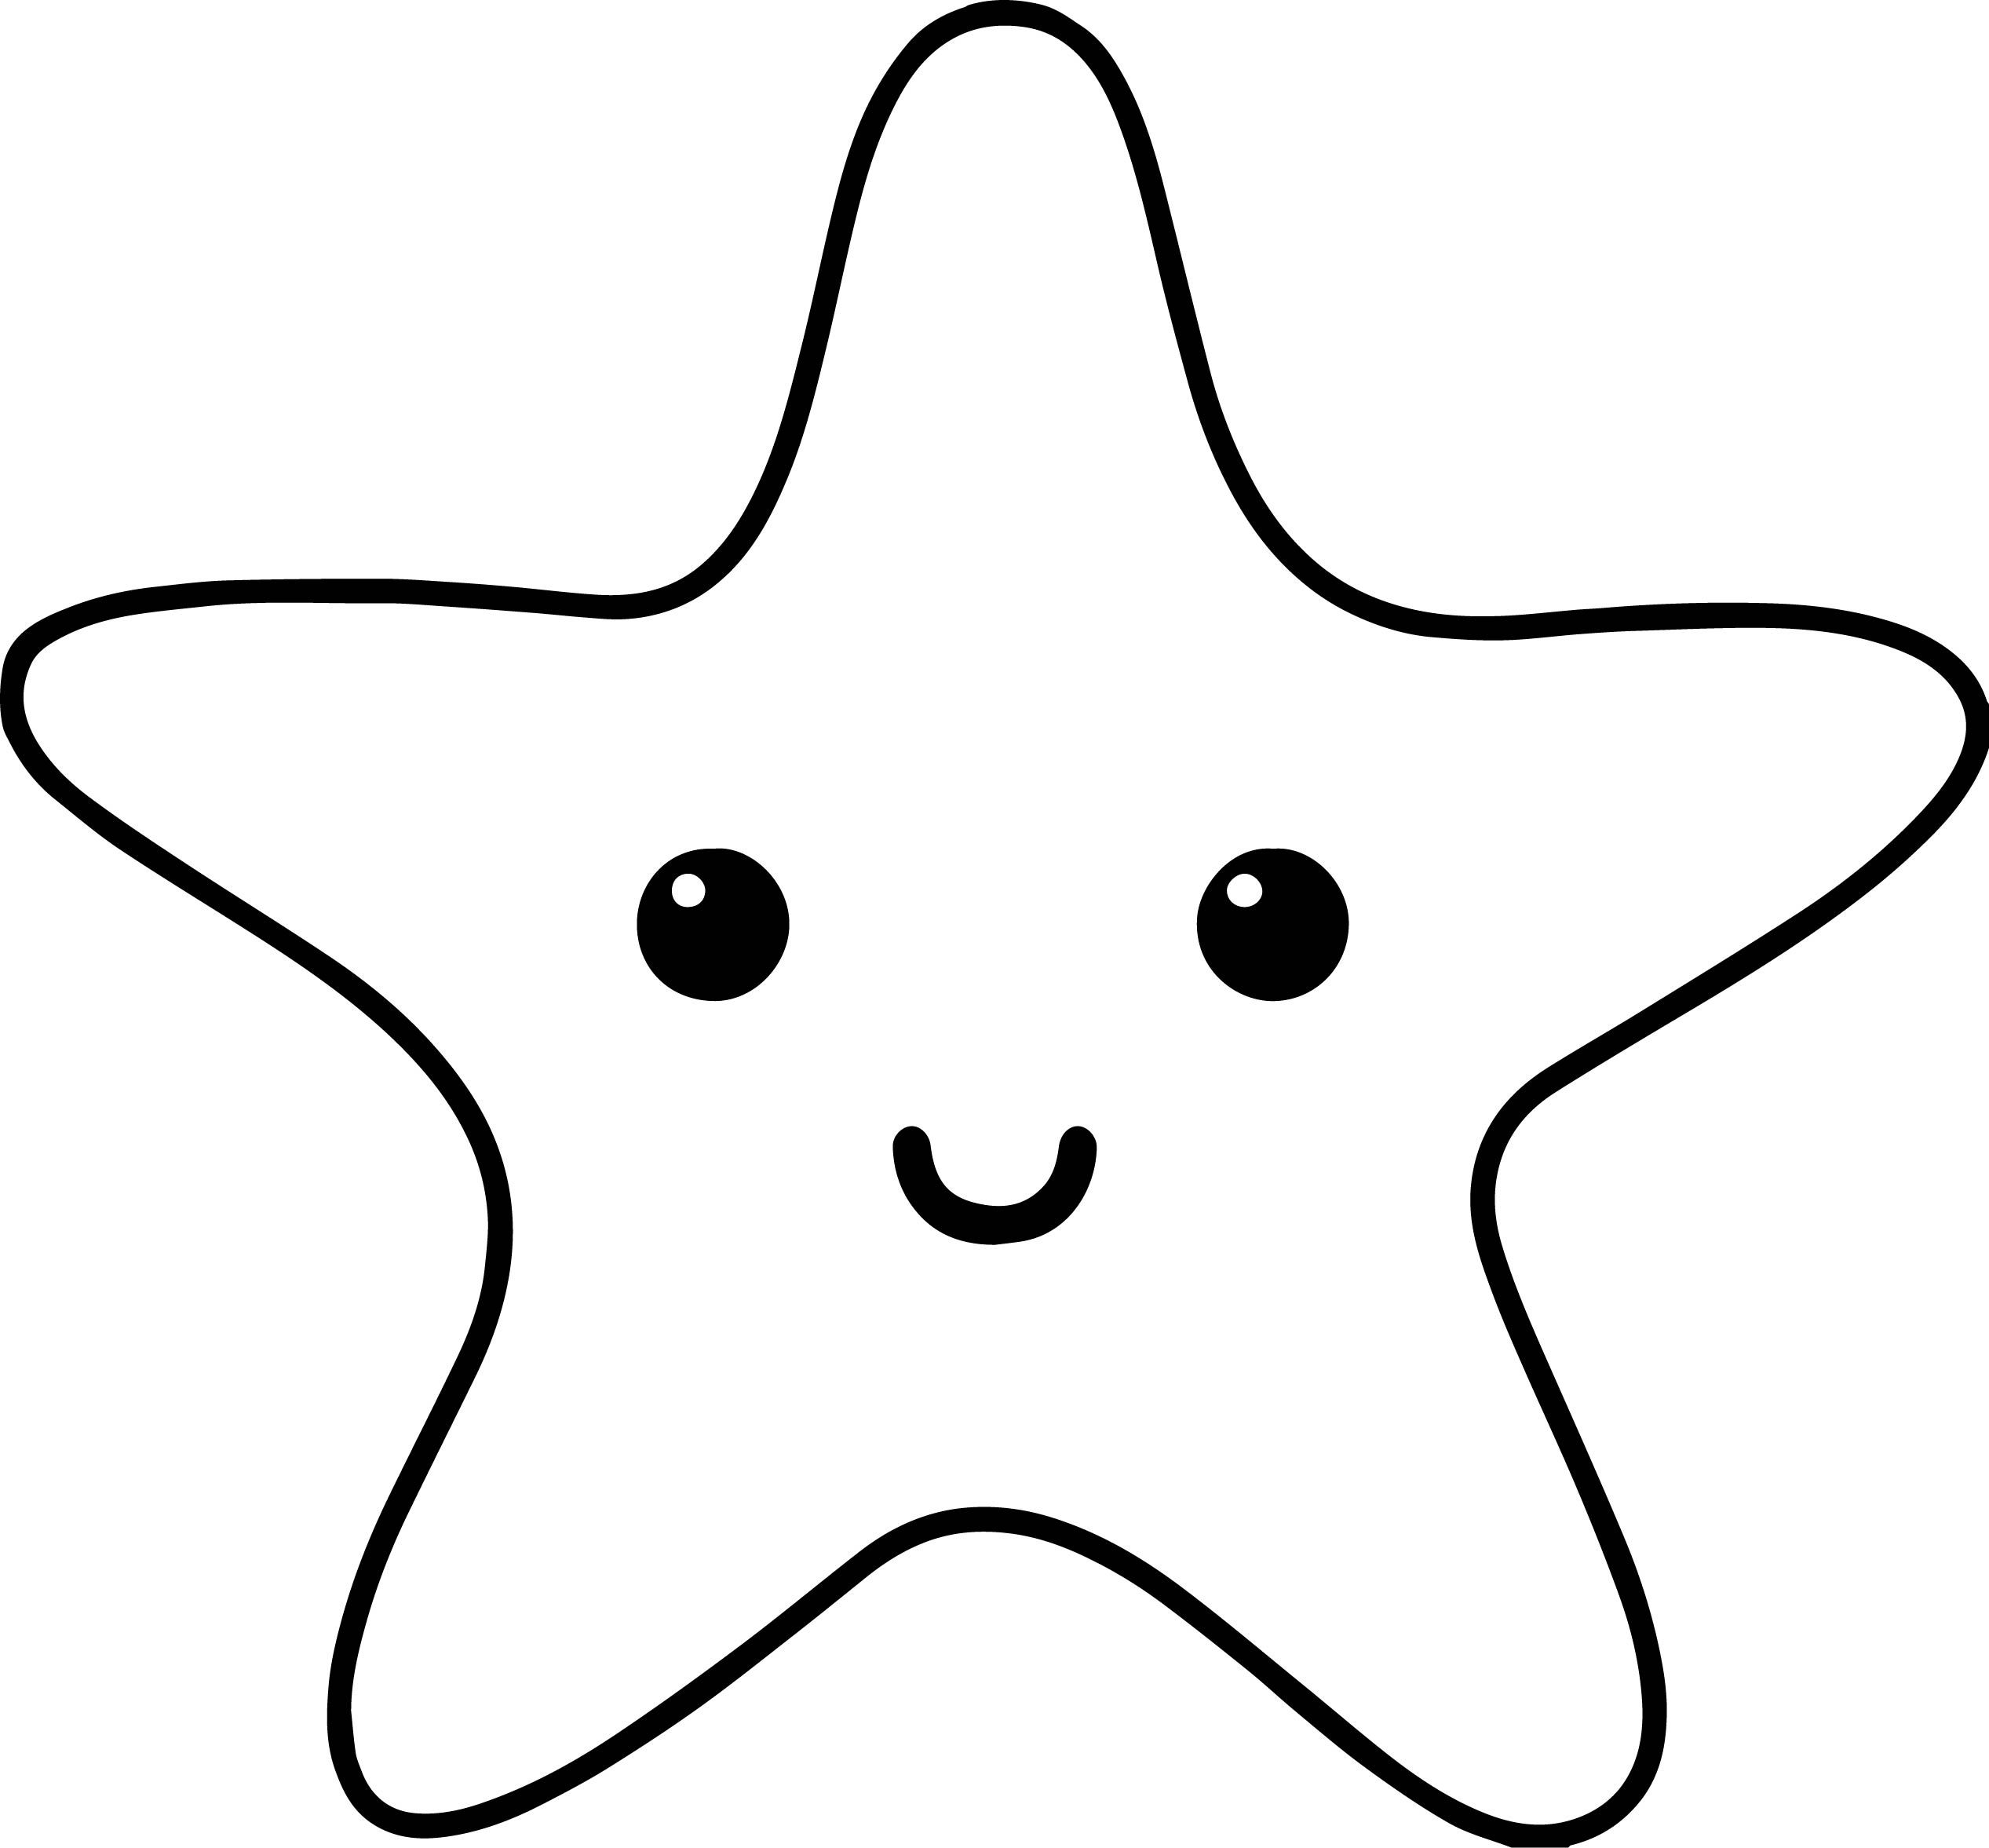 Cool Starfish Sea Creatures Coloring Page Fish Coloring Page Star Coloring Pages Sea Creatures For Kids